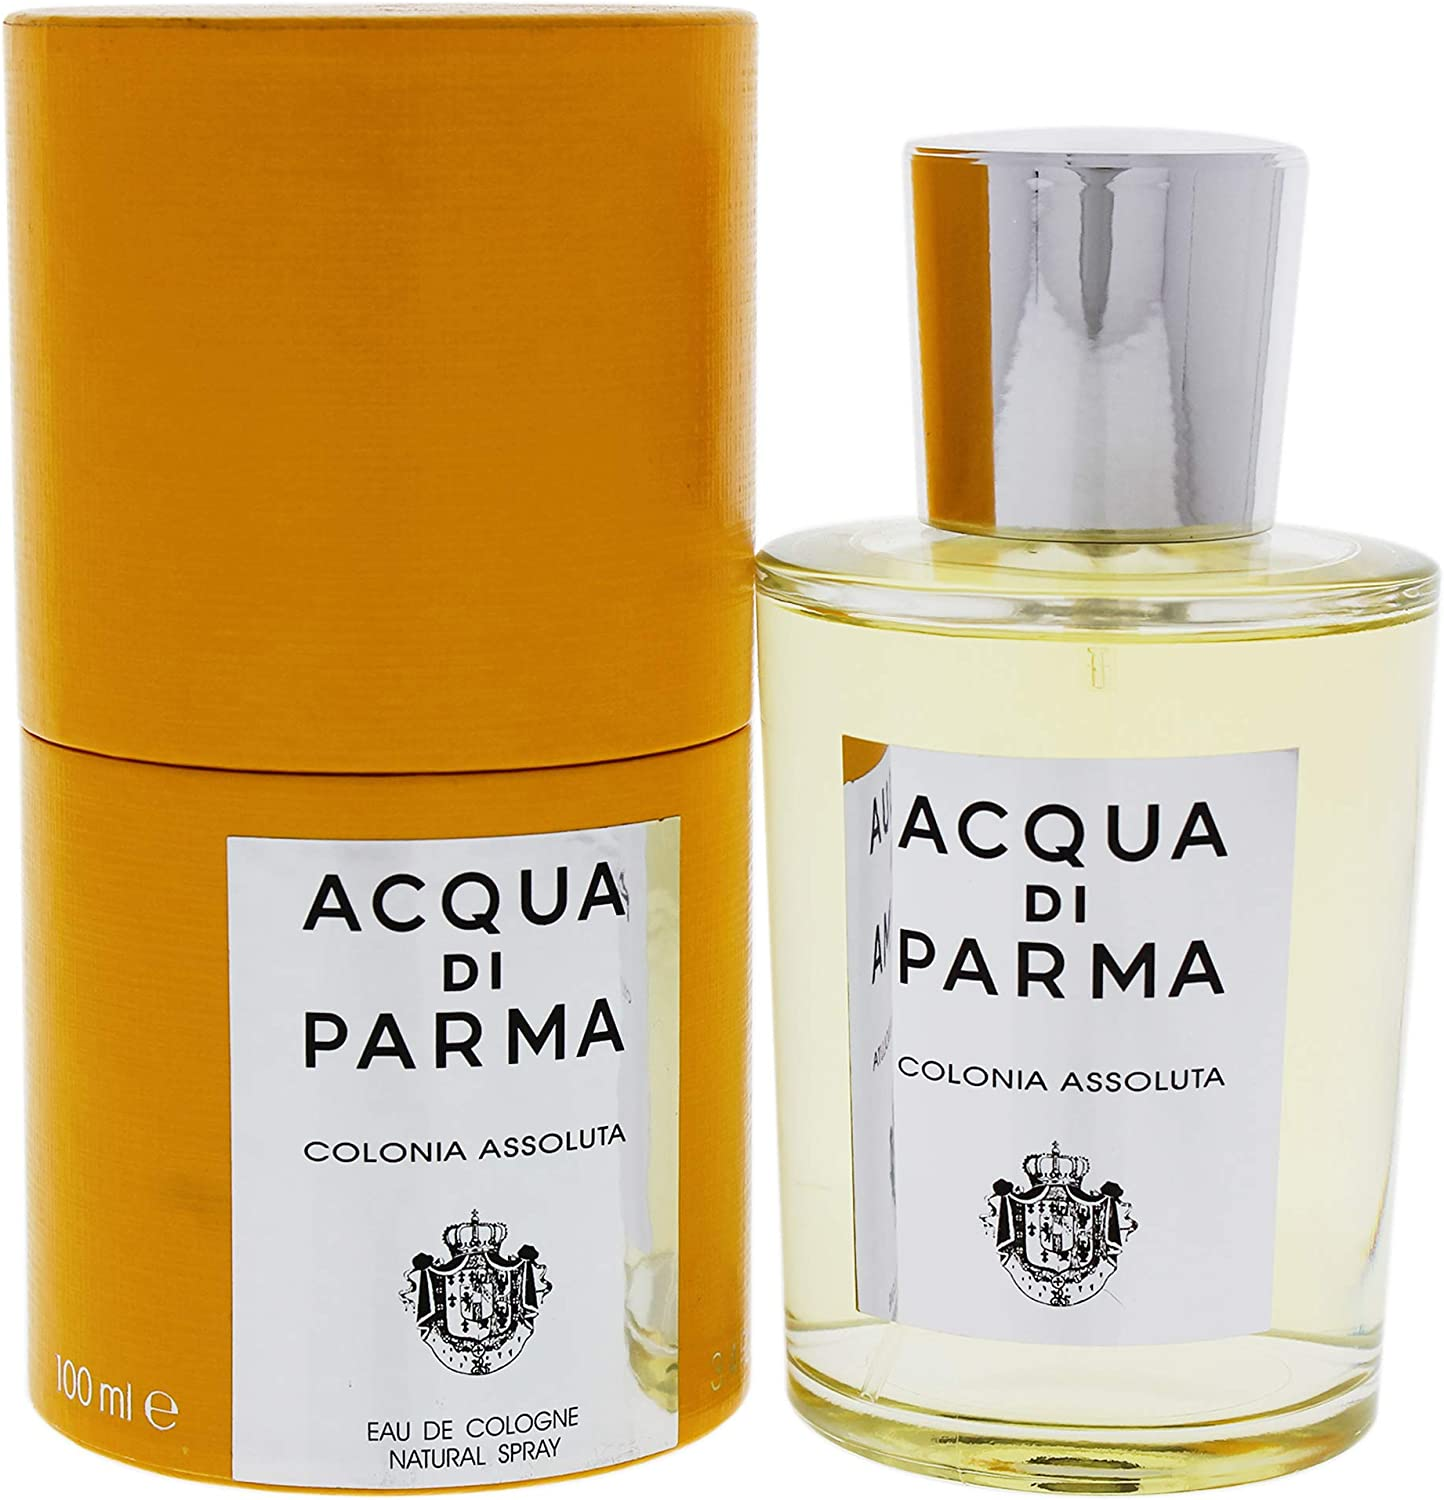 Acqua Di Parma Eau De Cologne Spray 100ml Acqua Di Parma Amazon Co Uk Beauty